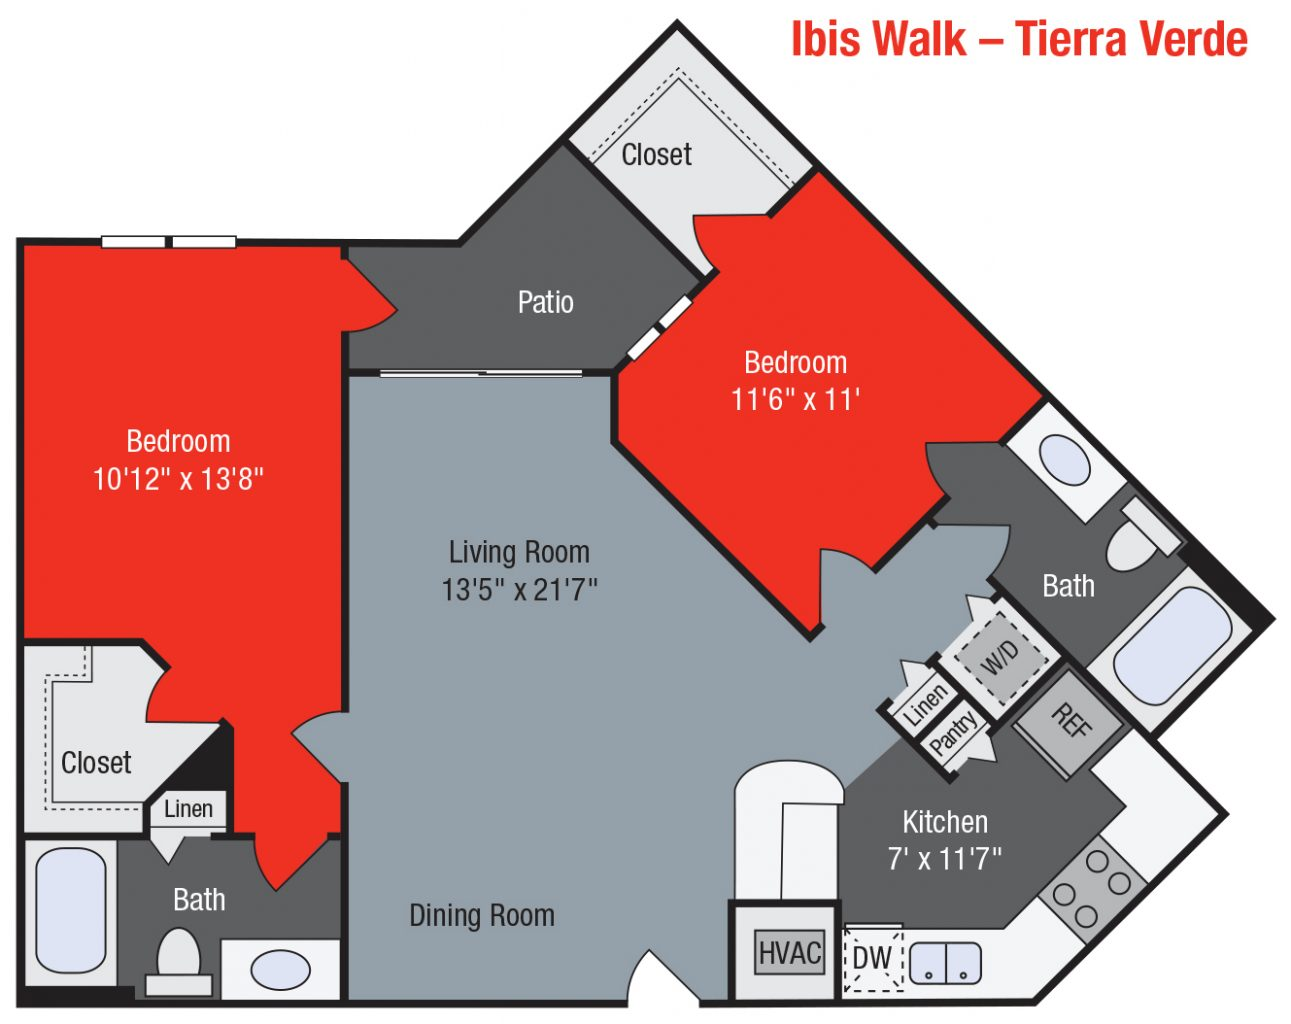 Apartments For Rent TGM Ibis Walk - Tierra Verde